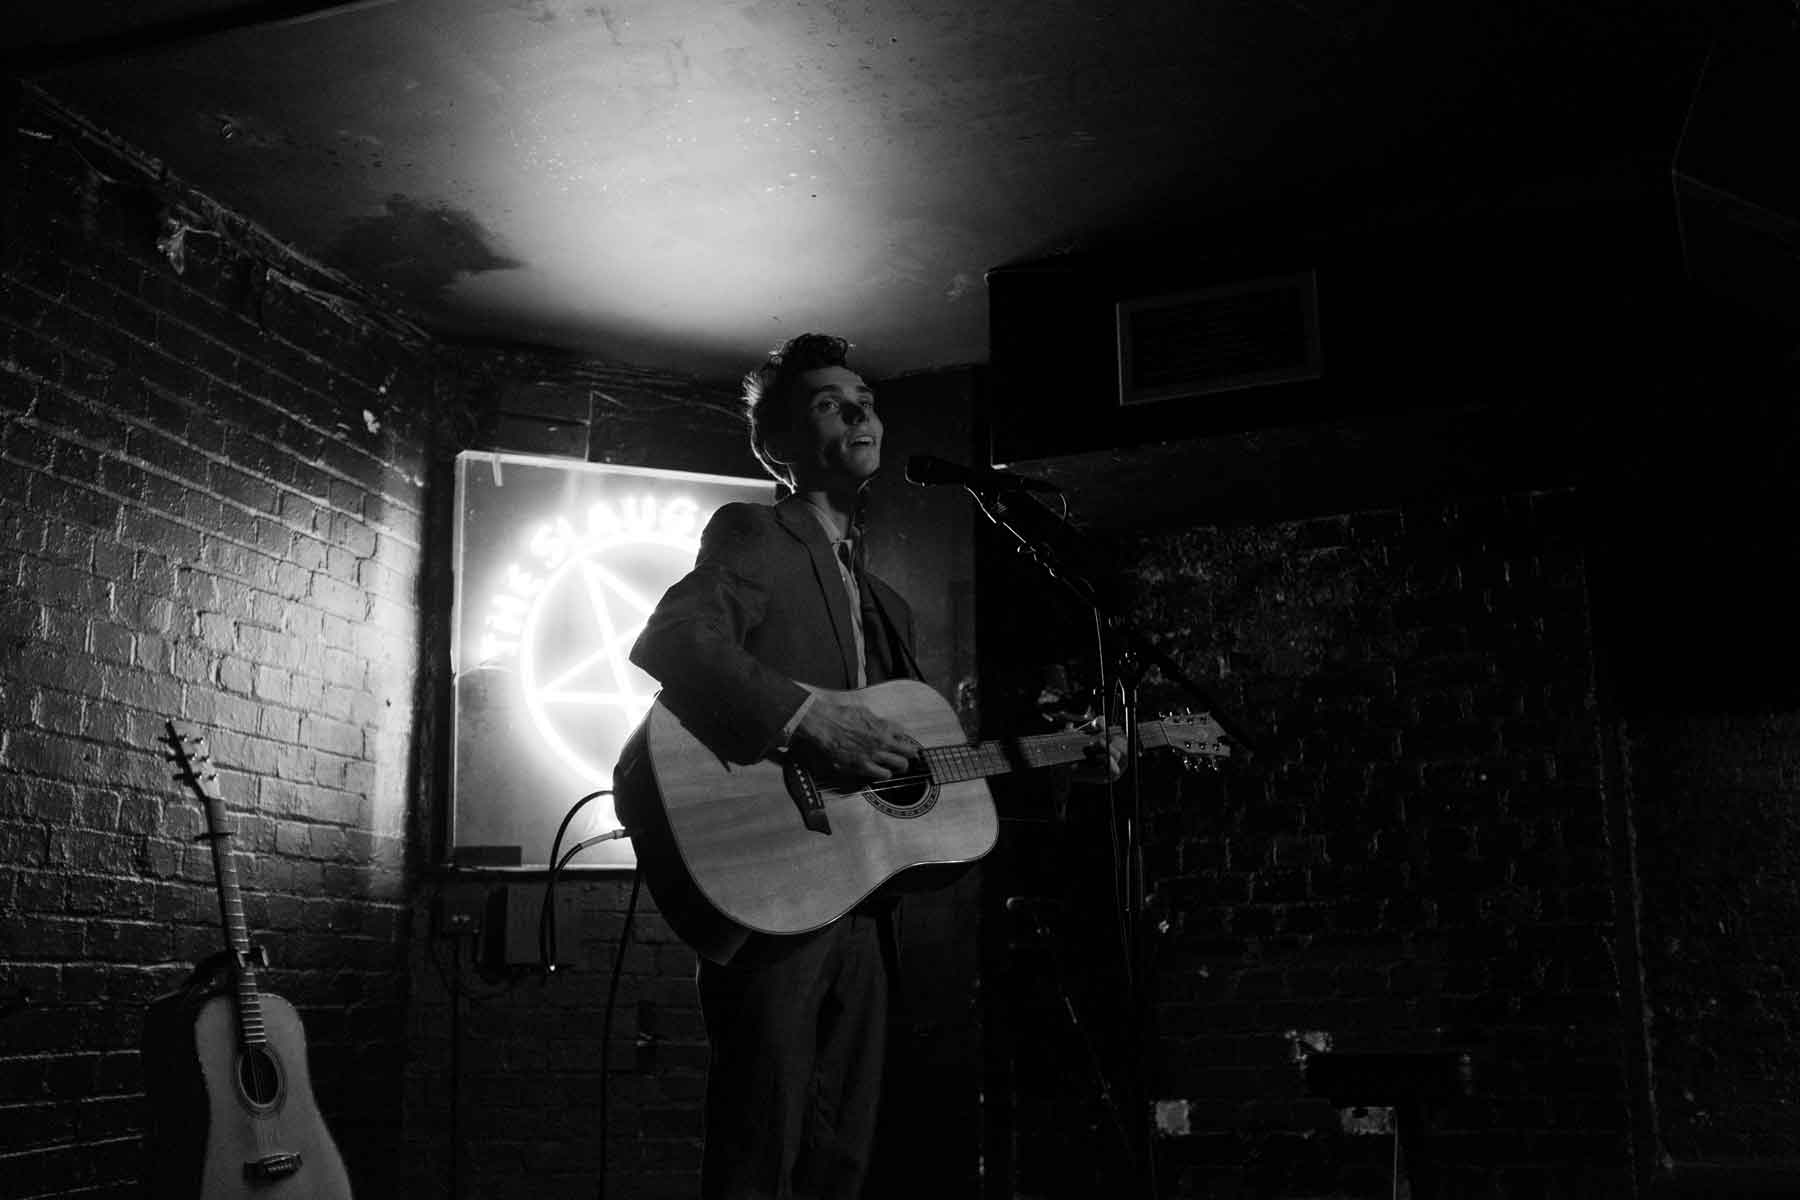 Chris Tavener Performing at The Slaughtered Lamb. Photo by Jack Stanley